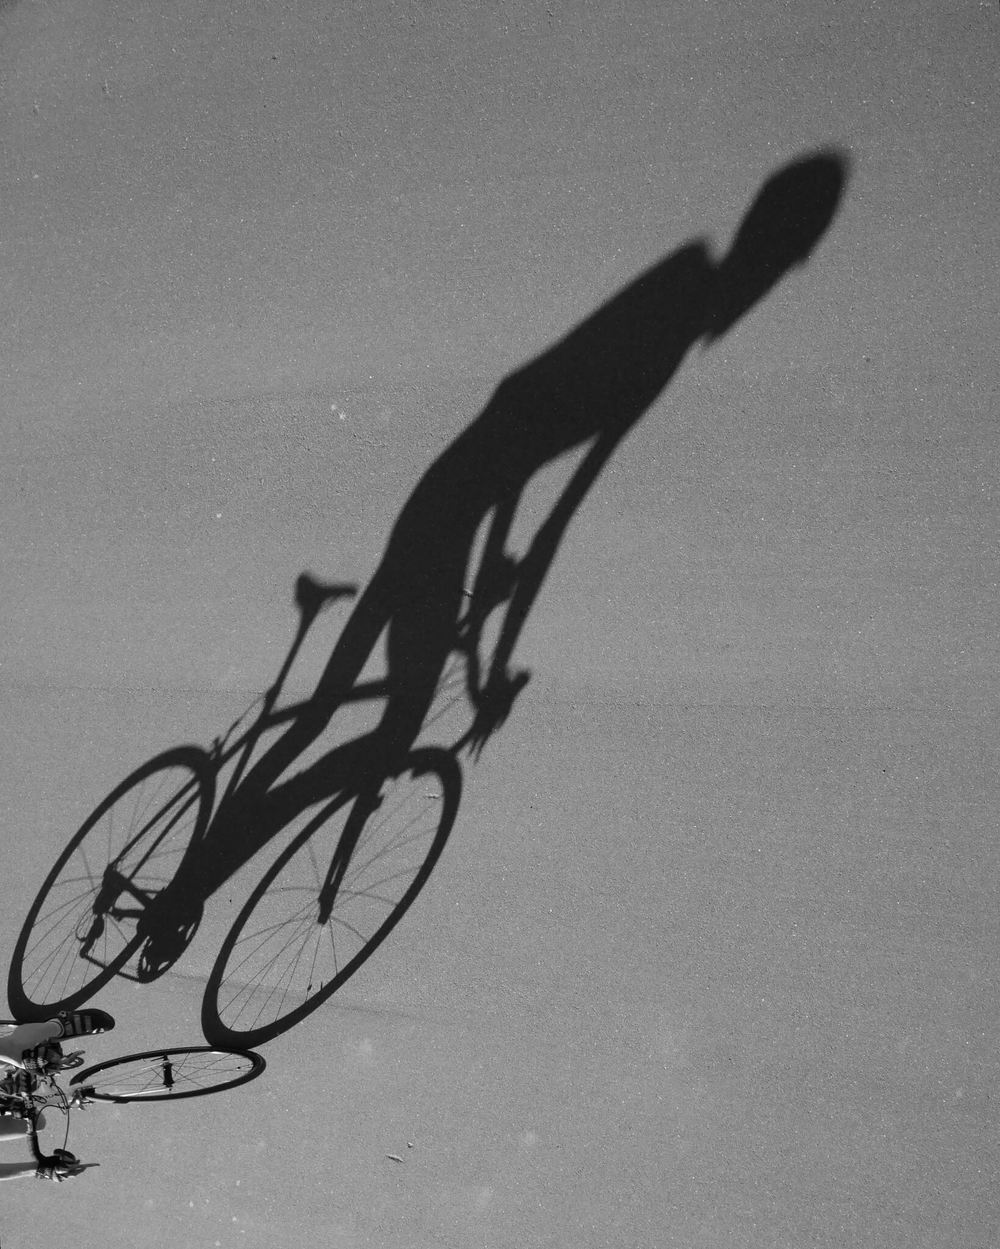 Shadow - A shadow of a cyclist taken at Cyclopark in Gravesend, Kent